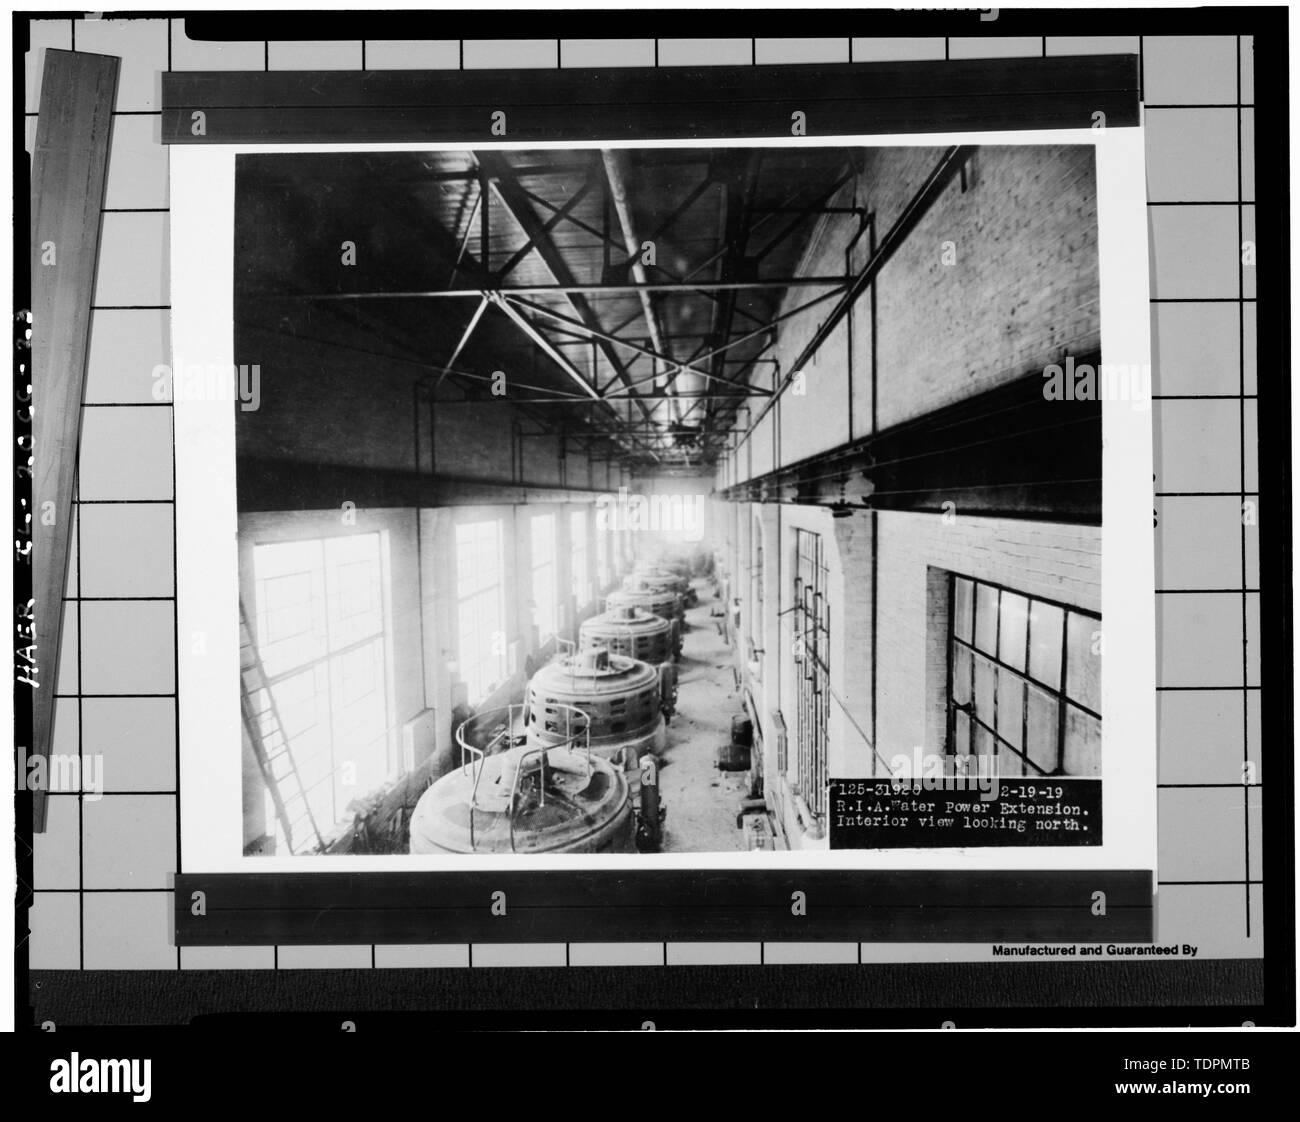 Photograph of a photograph in possession of Rock Island Arsenal Historical Office. VERTICAL WESTINGHOUSE GENERATORS IN 1919 ADDITION. DATED FEBRUARY 19, 1919. - Rock Island Arsenal, Building No. 160, Sylvan Drive, Rock Island, Rock Island County, IL; Central Engineering Company of Davenport - Stock Image